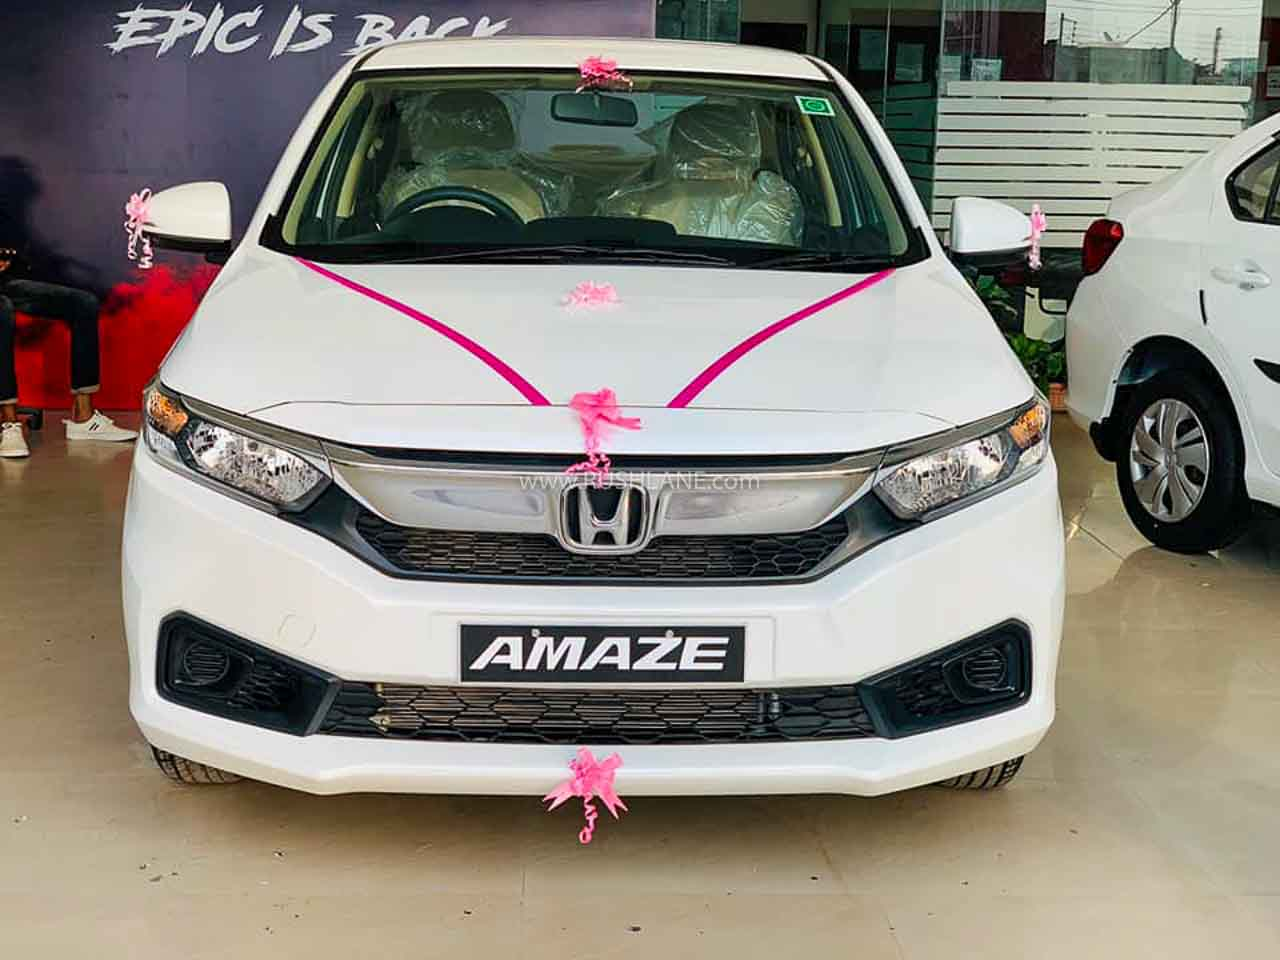 Honda Car Sales Break Up Sep 2020 - Amaze, City, WRV, Jazz, Civic, CRV